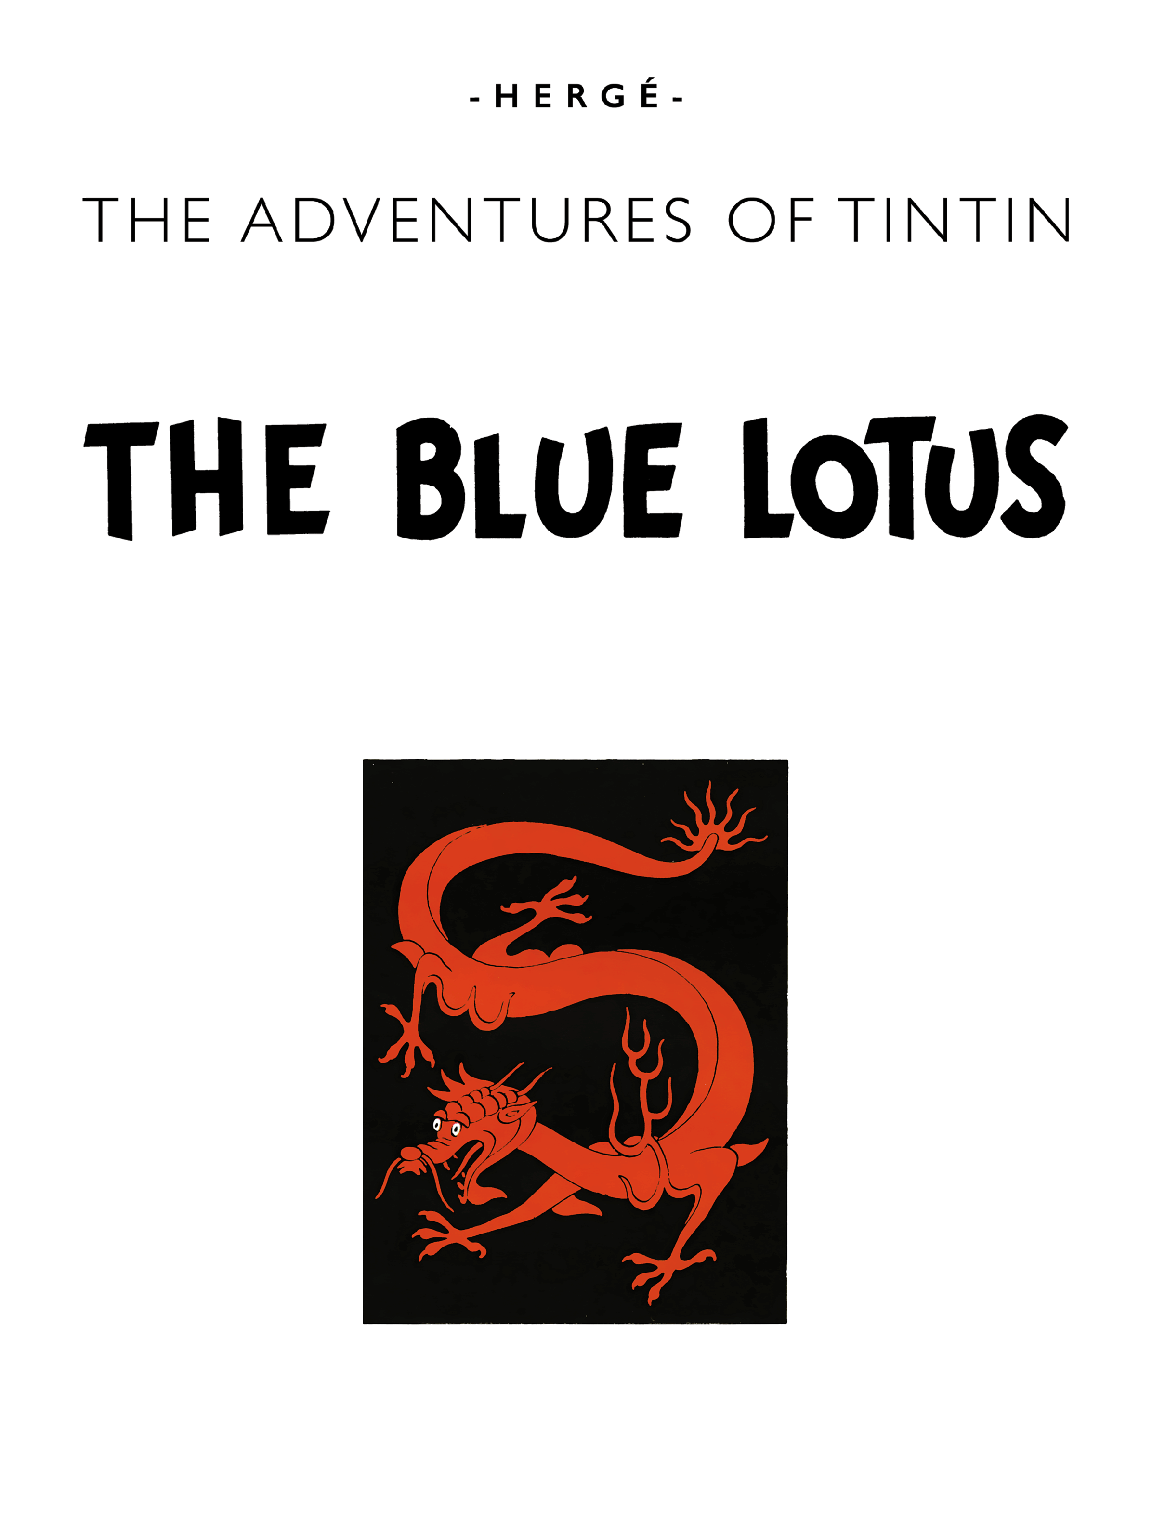 The Blue Lotus - Title page